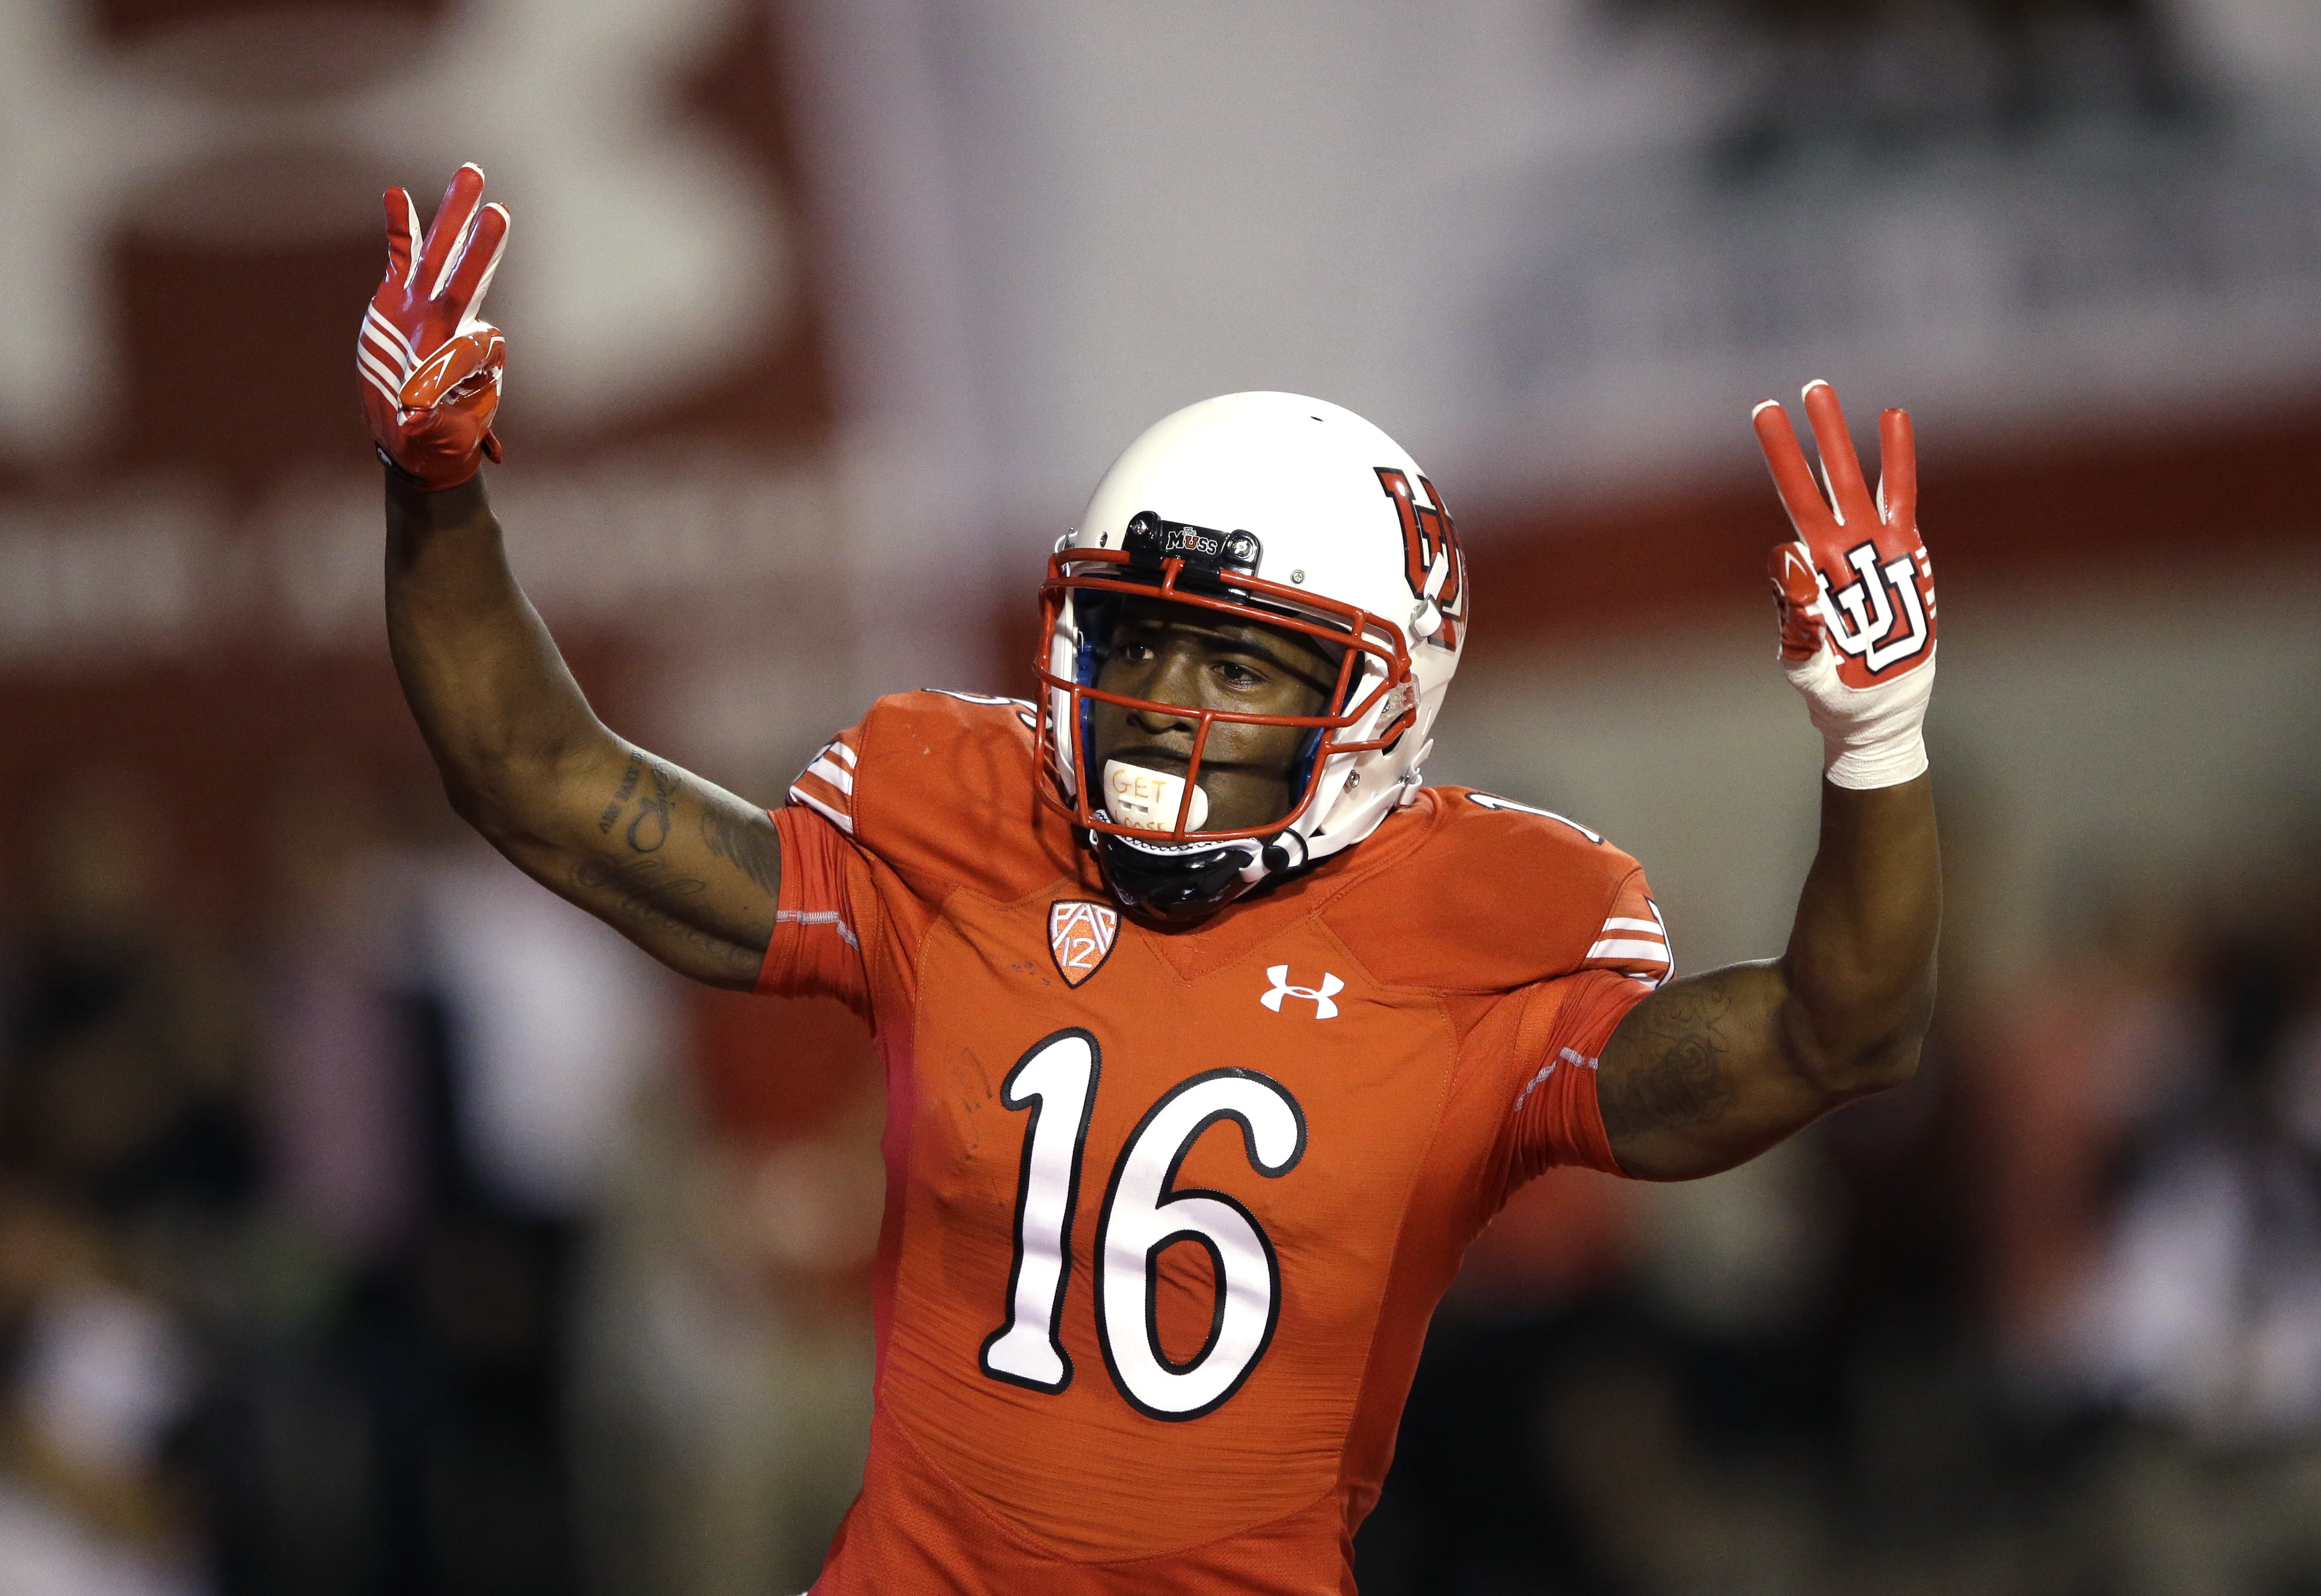 FILE - In this Oct. 10, 2015, file photo, Utah's Cory Butler-Byrd celebrates after scoring against California during an NCAA college football game in Salt Lake City. Suspended Utah receiver Butler-Byrd has pleaded guilty to a misdemeanor charge of crimina